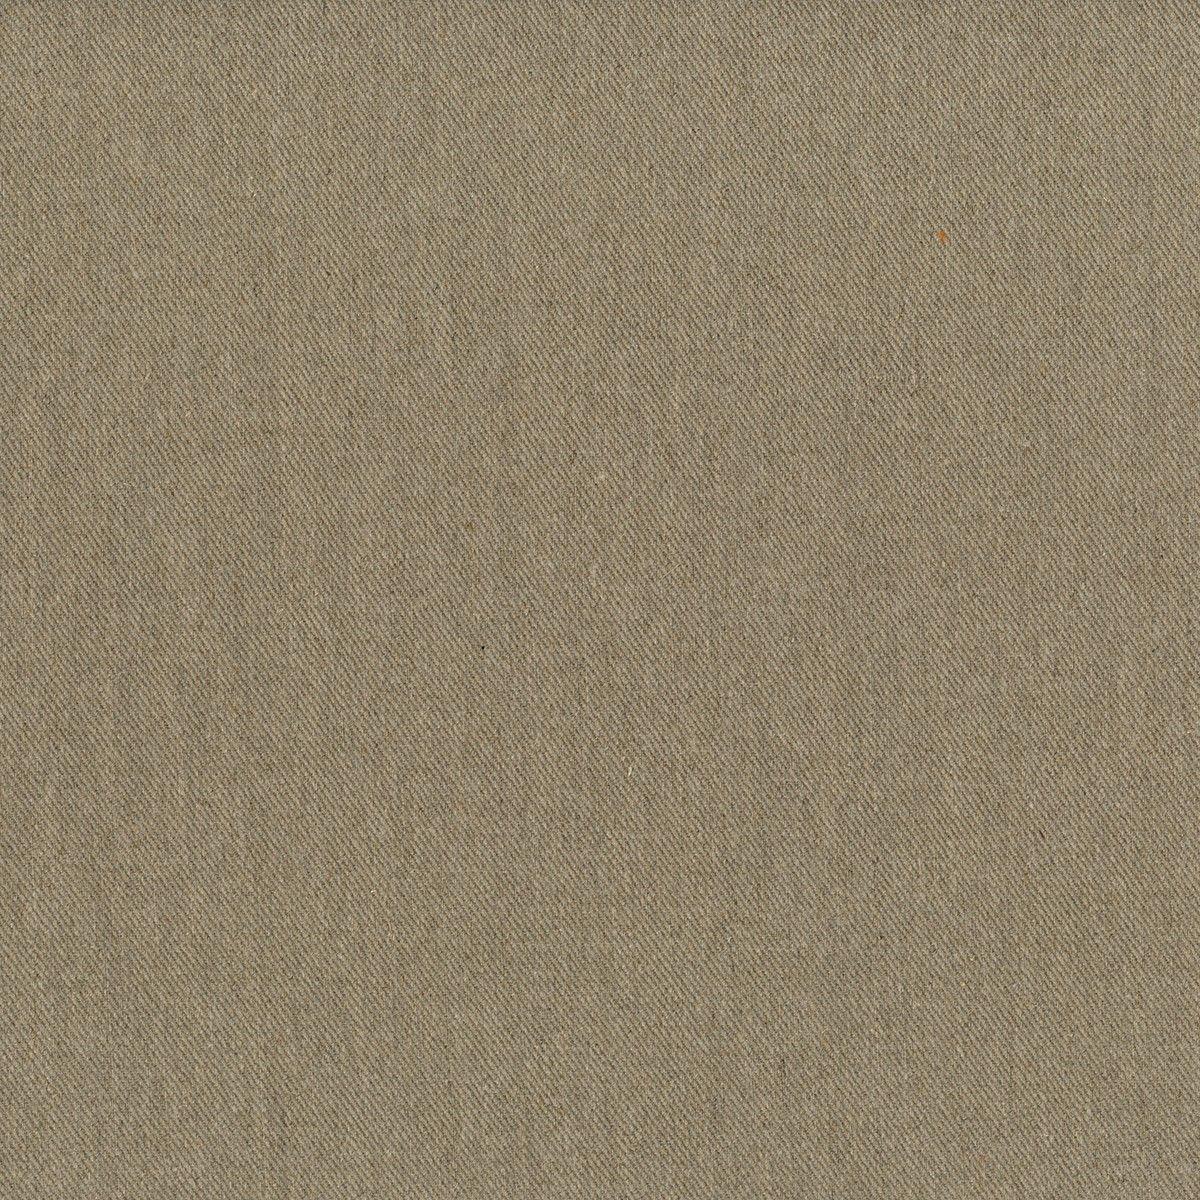 ANICHINI Fabrics | Upholstery Linen 1-45/1-340 Natural Residential Fabric - a neutral linen fabric